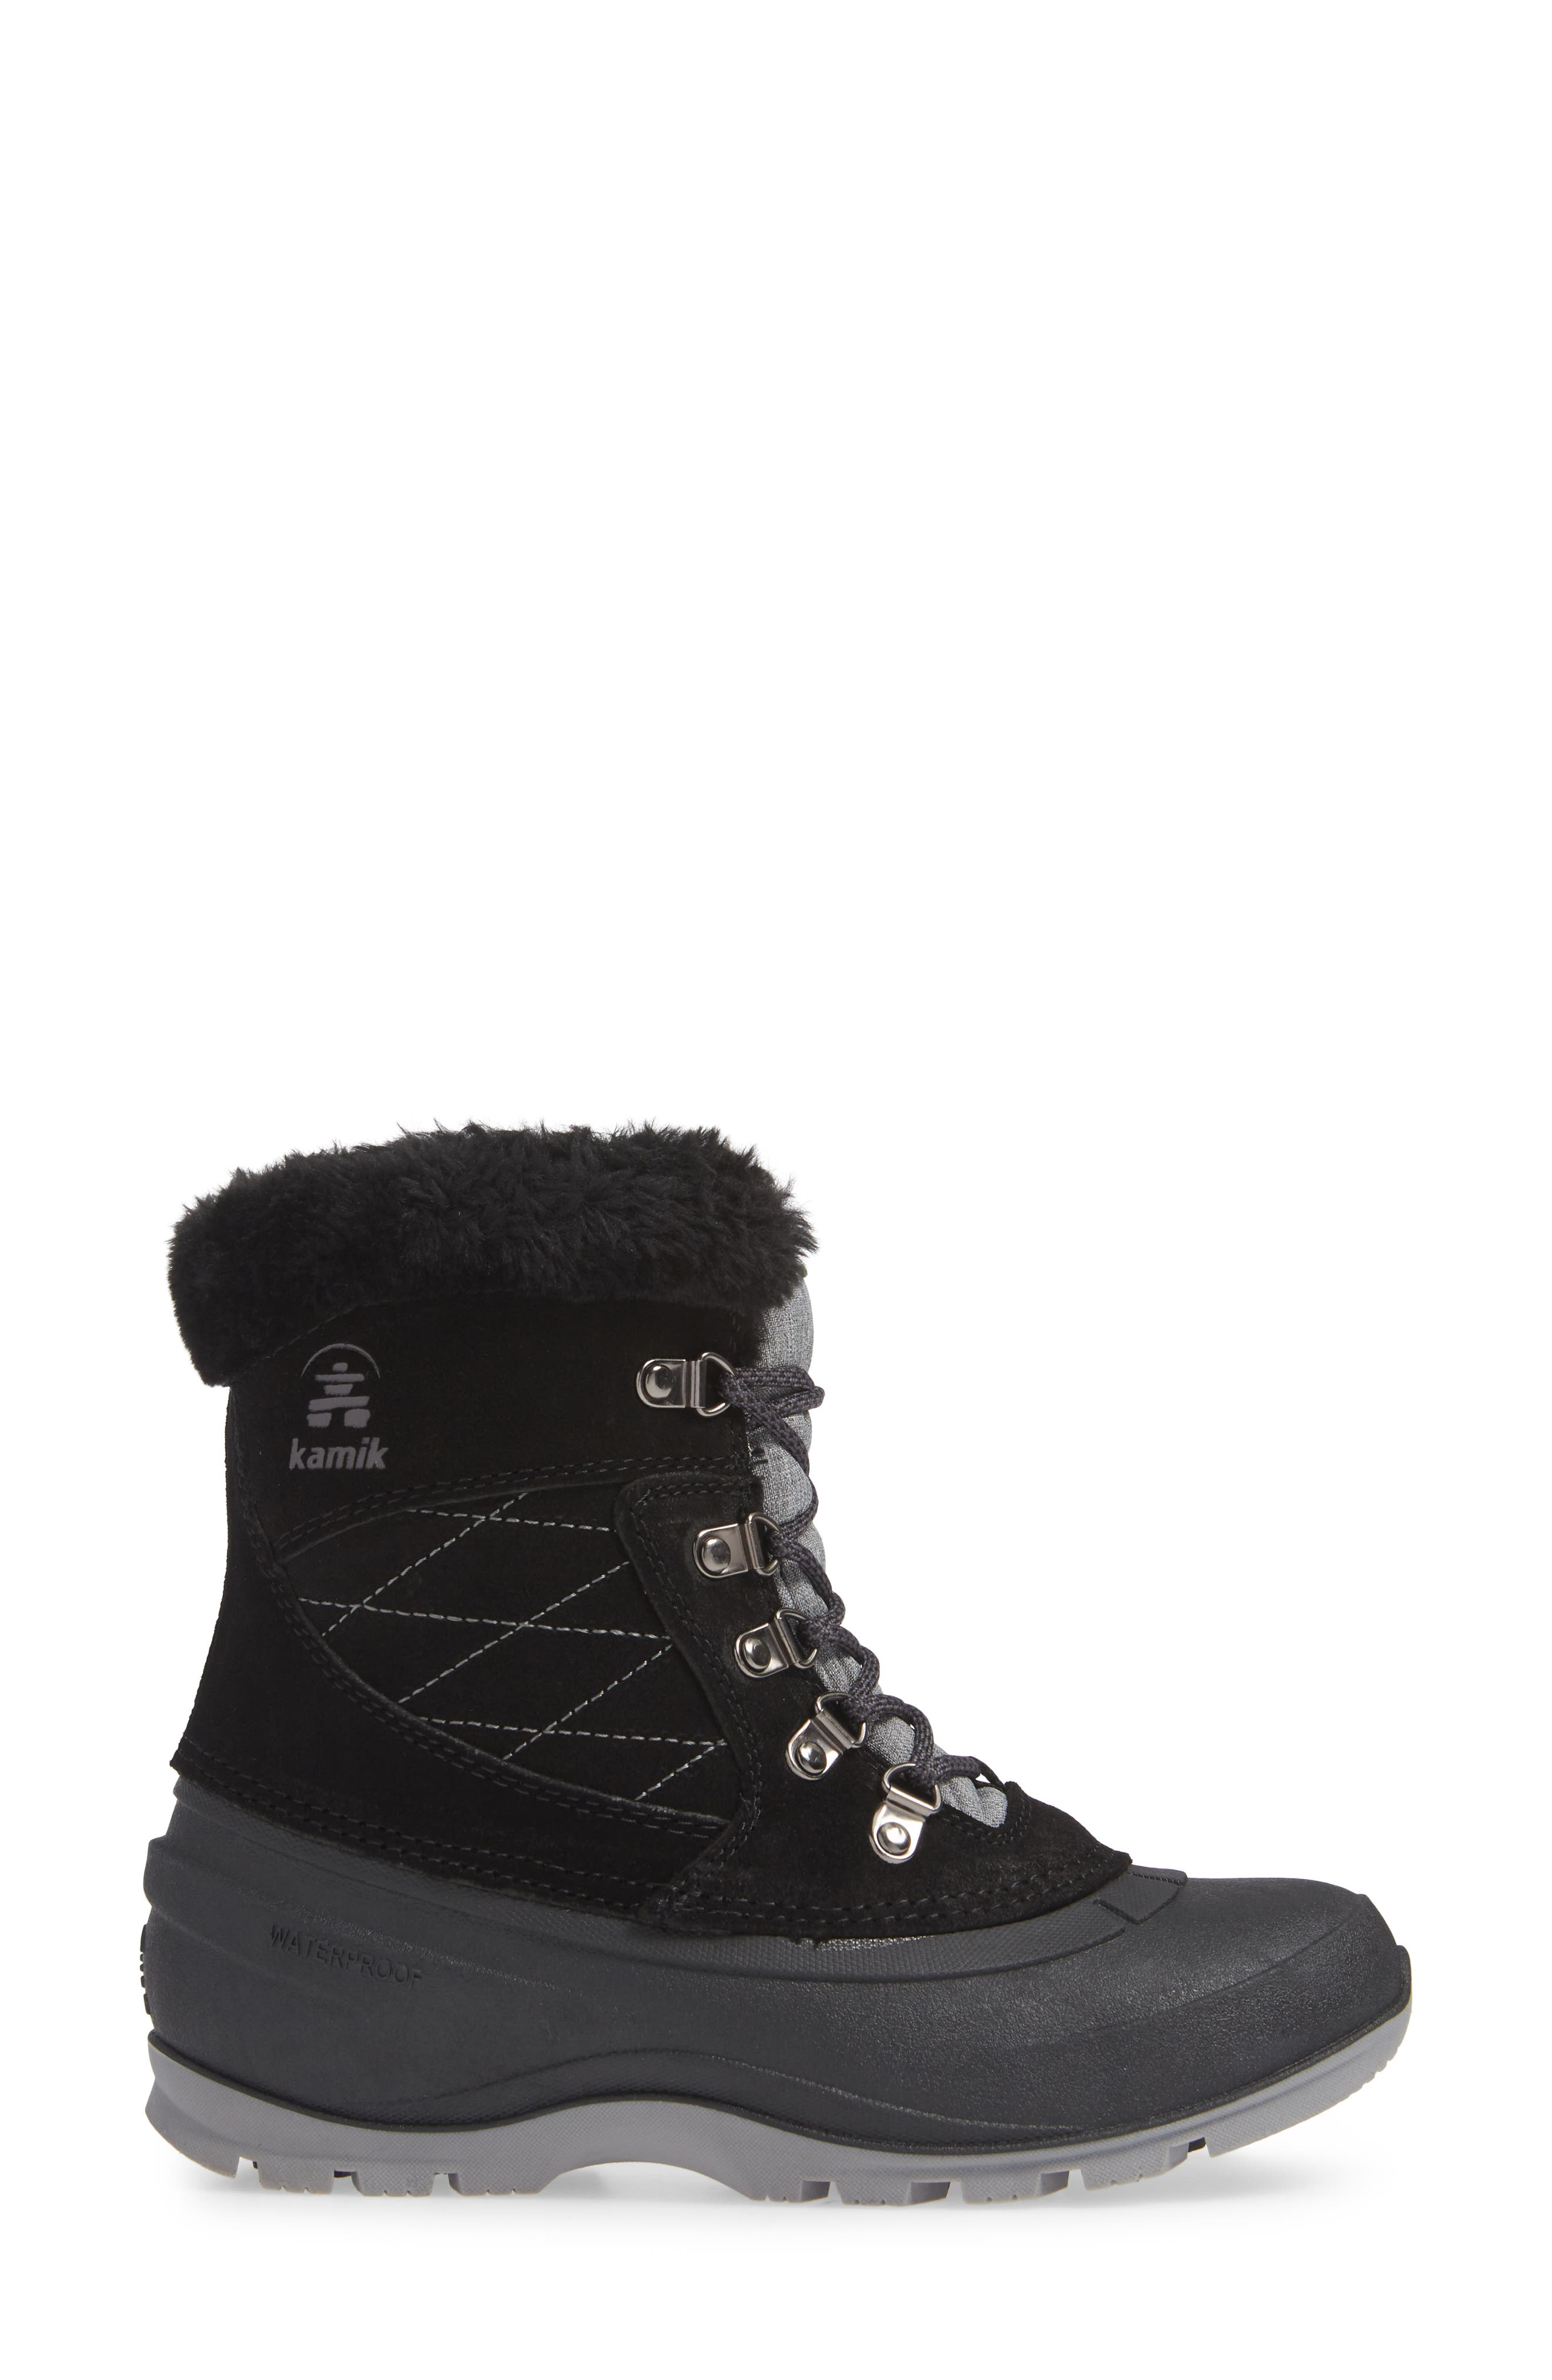 KAMIK, Snovalley1 Waterproof Thinsulate<sup>®</sup> Insulated Snow Boot, Alternate thumbnail 3, color, 001